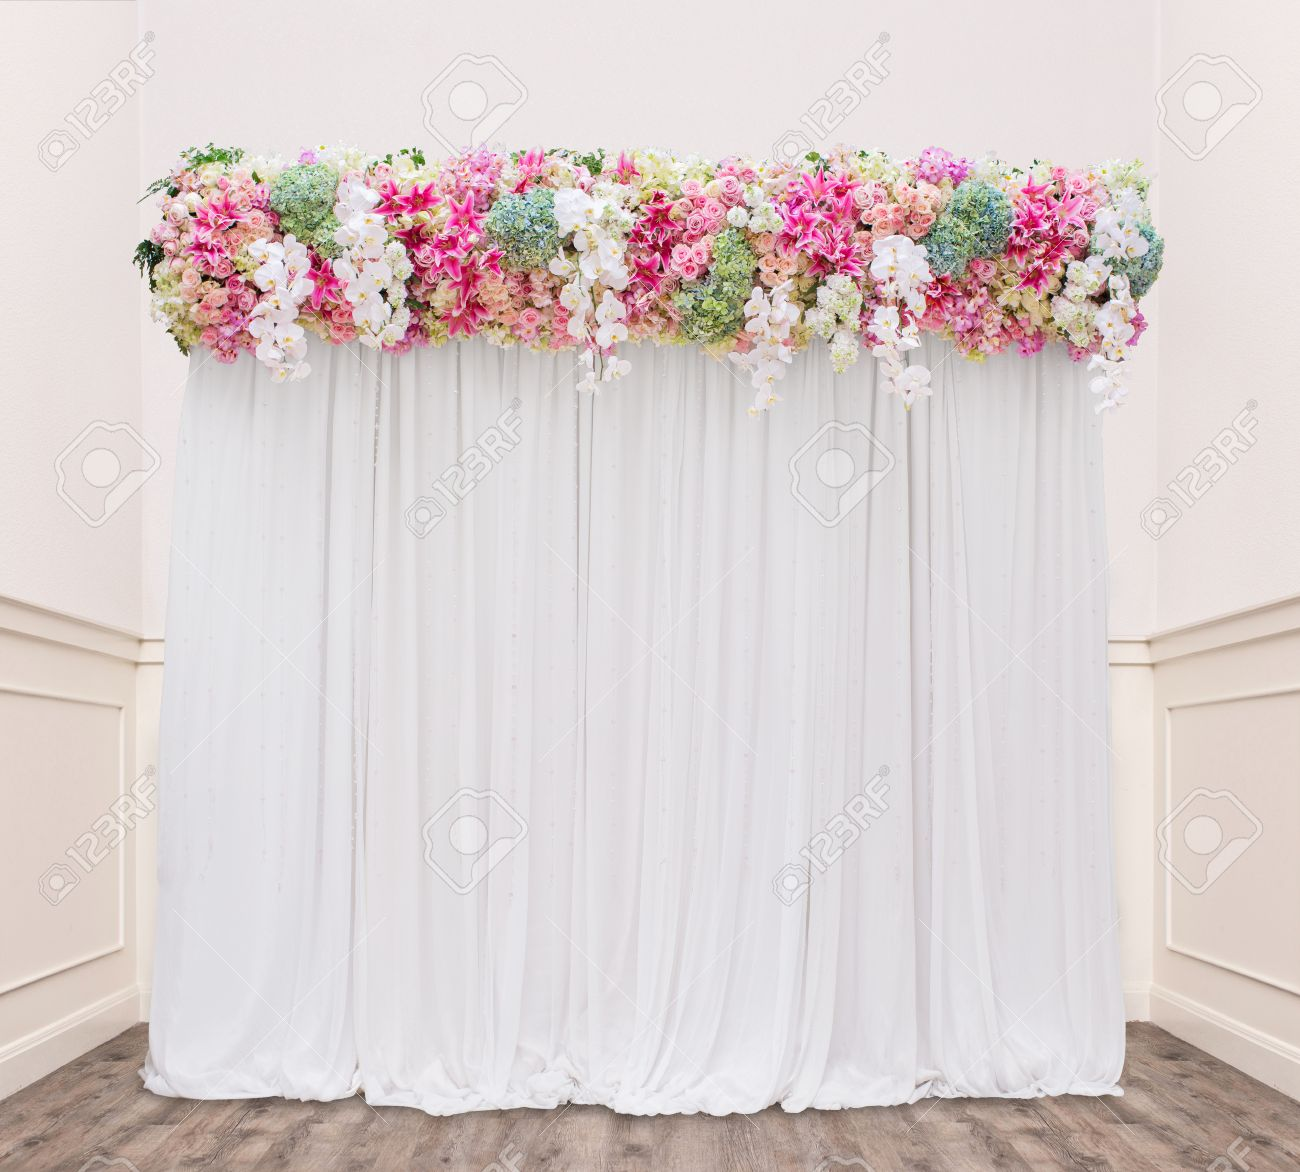 Floral Backdrop In Cozy Room At The Wedding Stock Photo Picture And